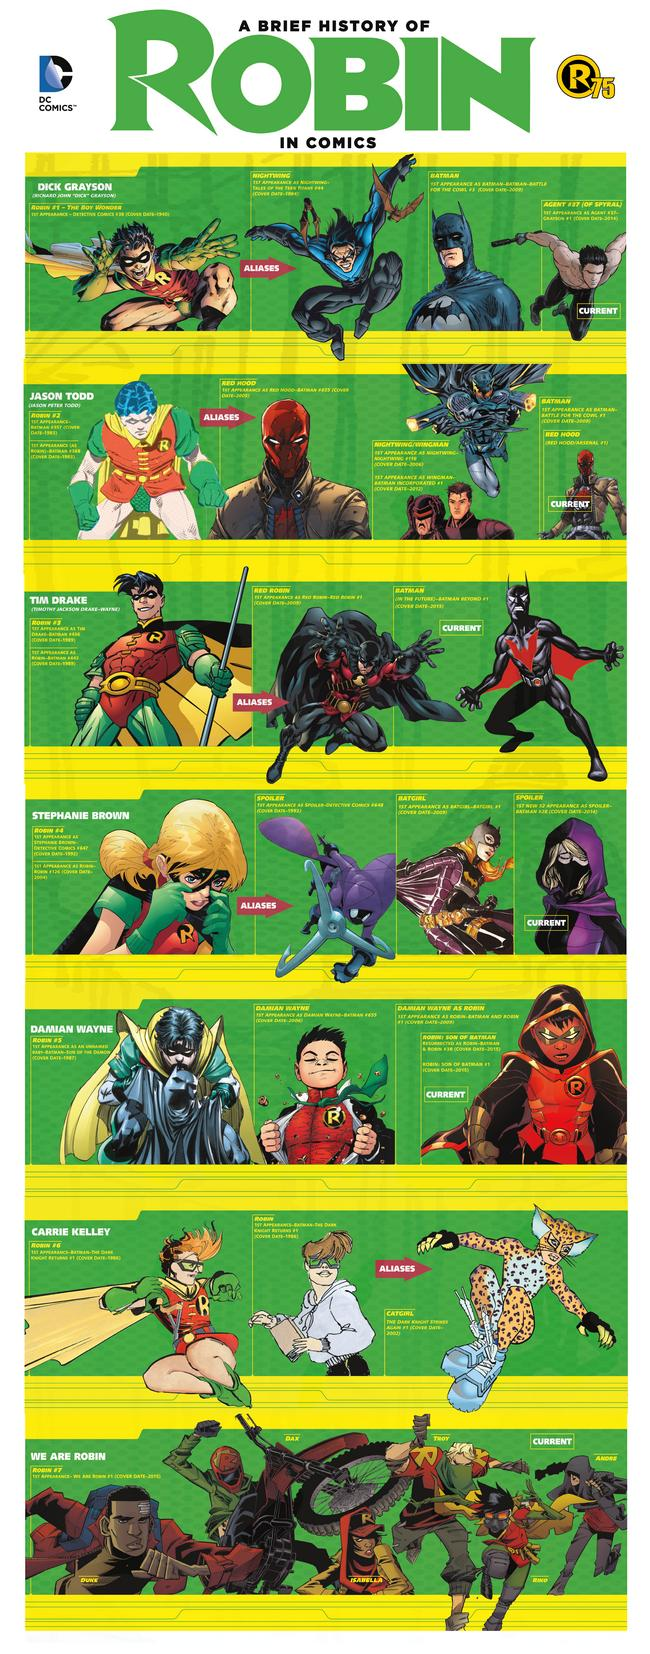 Evolution of Robin in Comics Infographic